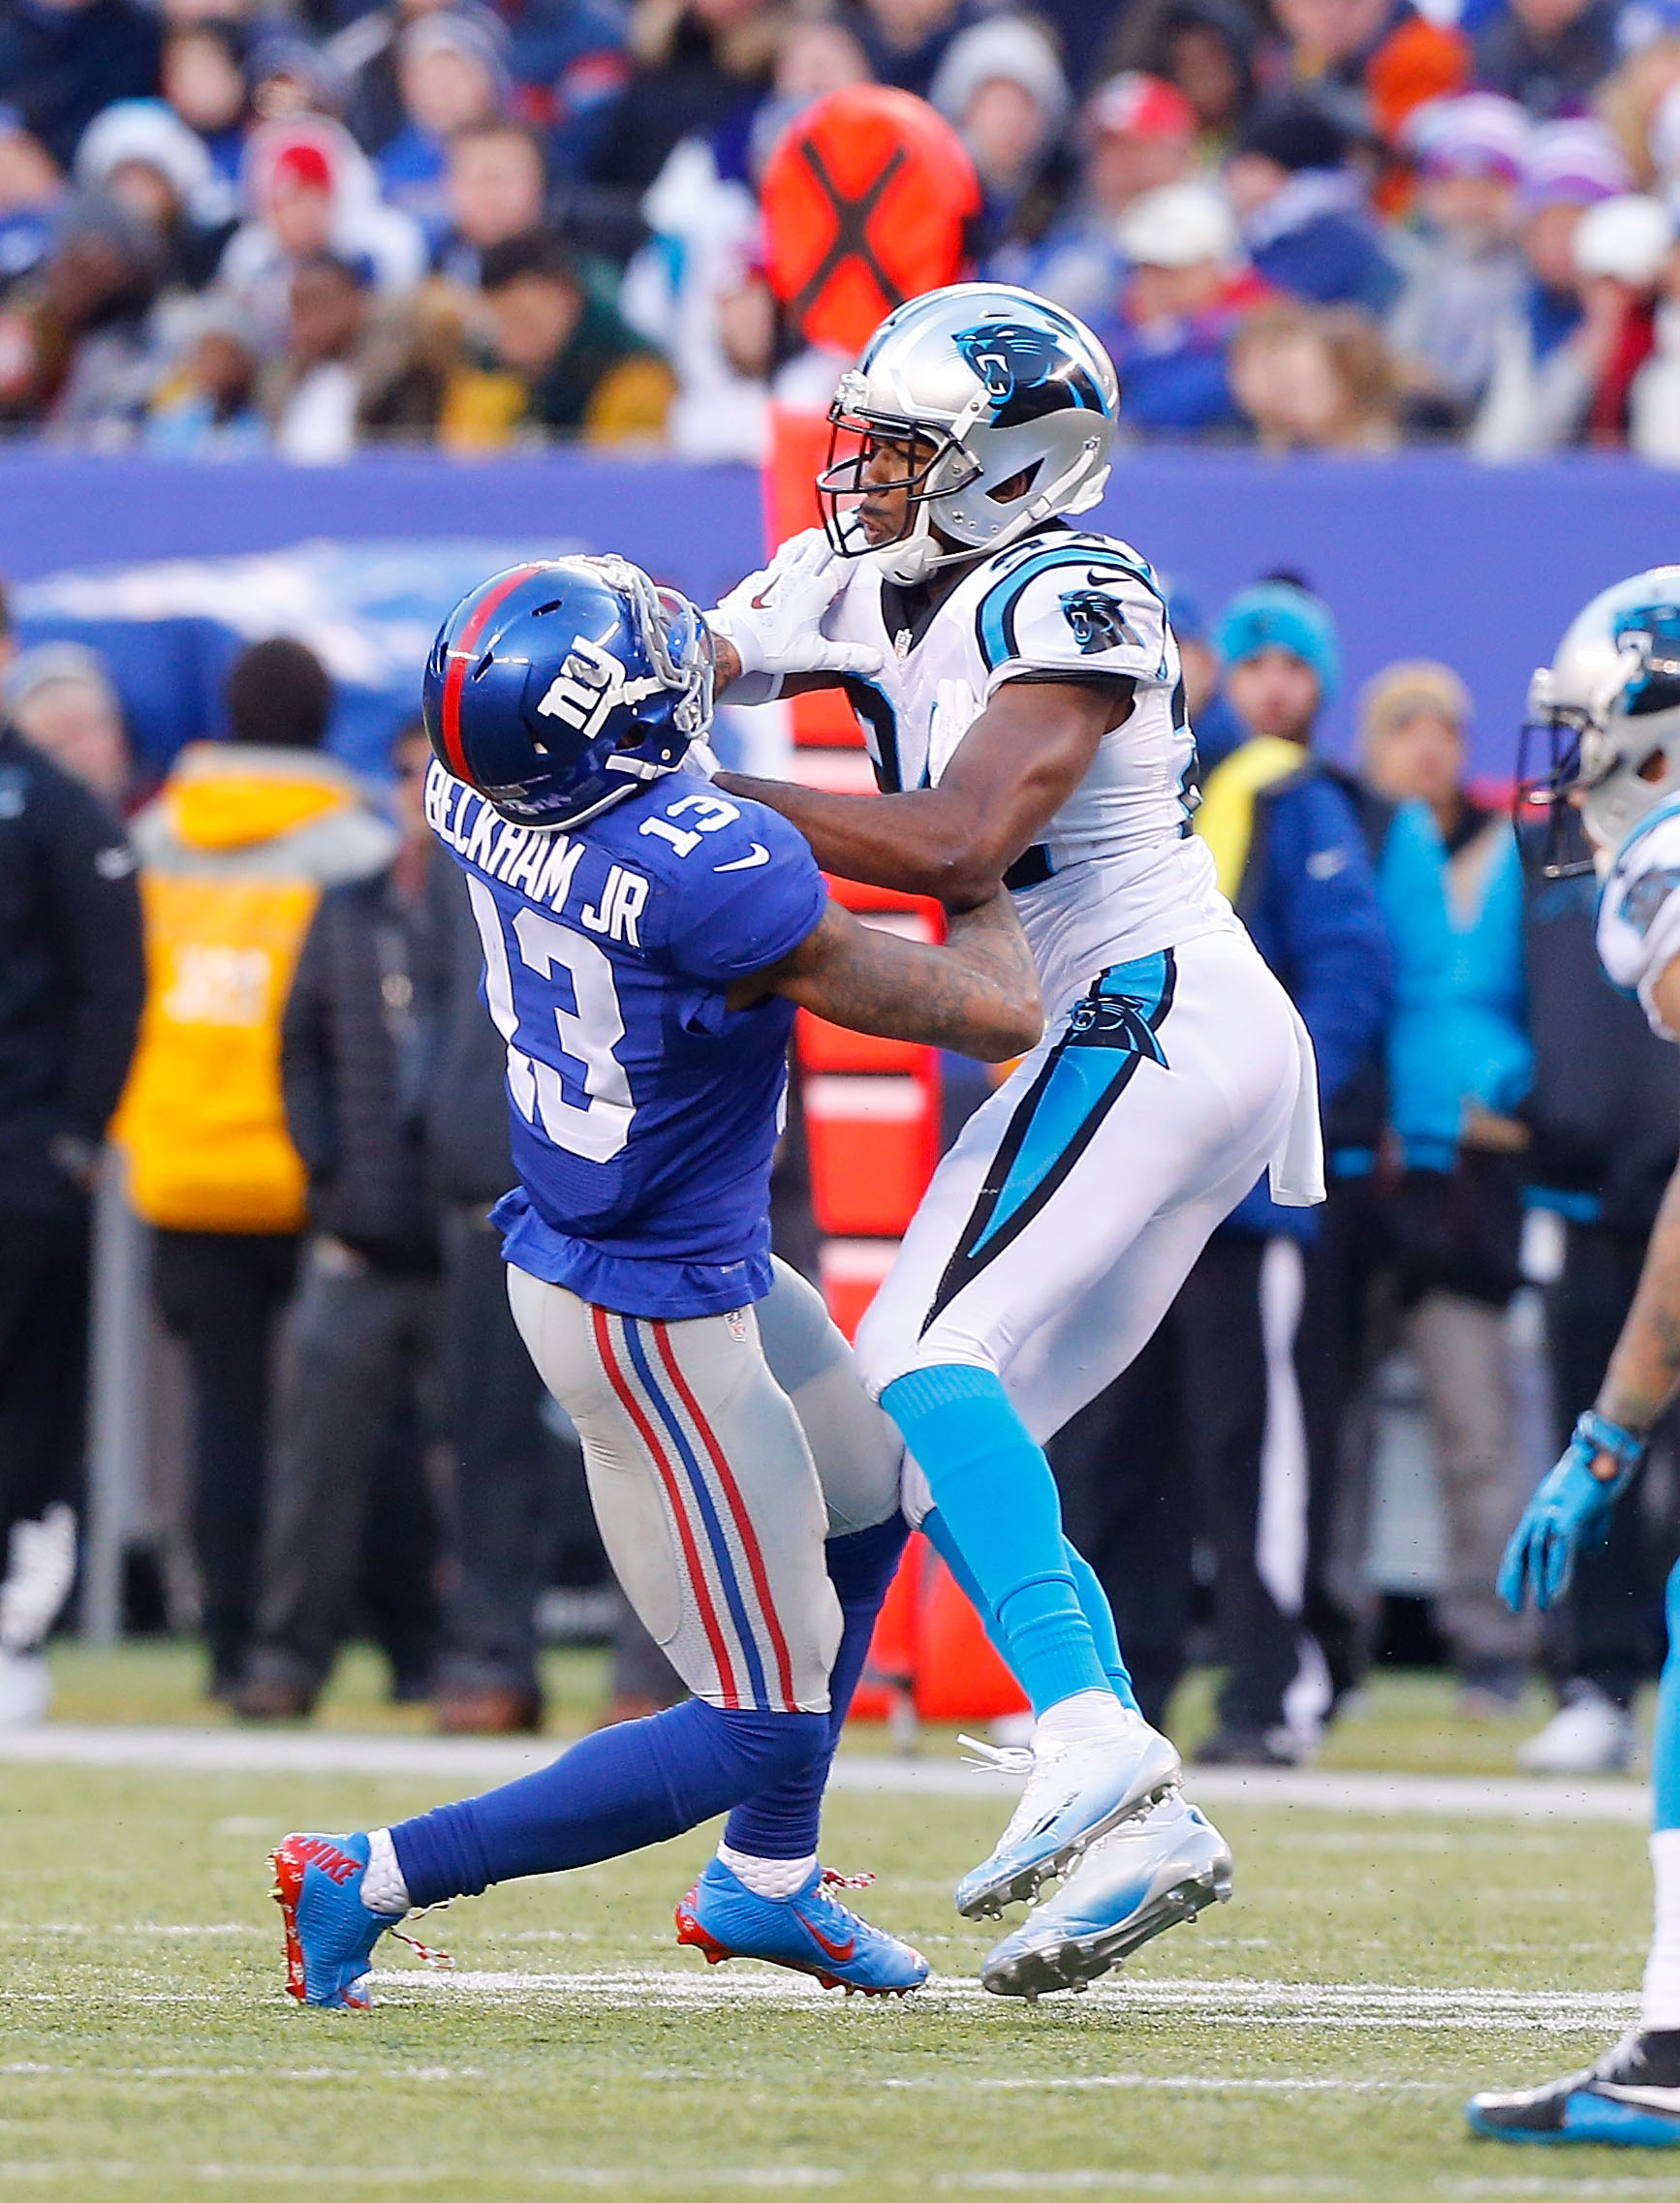 EAST RUTHERFORD, NJ - DECEMBER 20: (NEW YORK DAILIES OUT) Odell Beckham #13 of the New York Giants is hit by Josh Norman #24 of the Carolina Panthers during the second half on December 20, 2015 at MetLife Stadium in East Rutherford, New Jersey. The Panthers defeated the Giants 38-35.